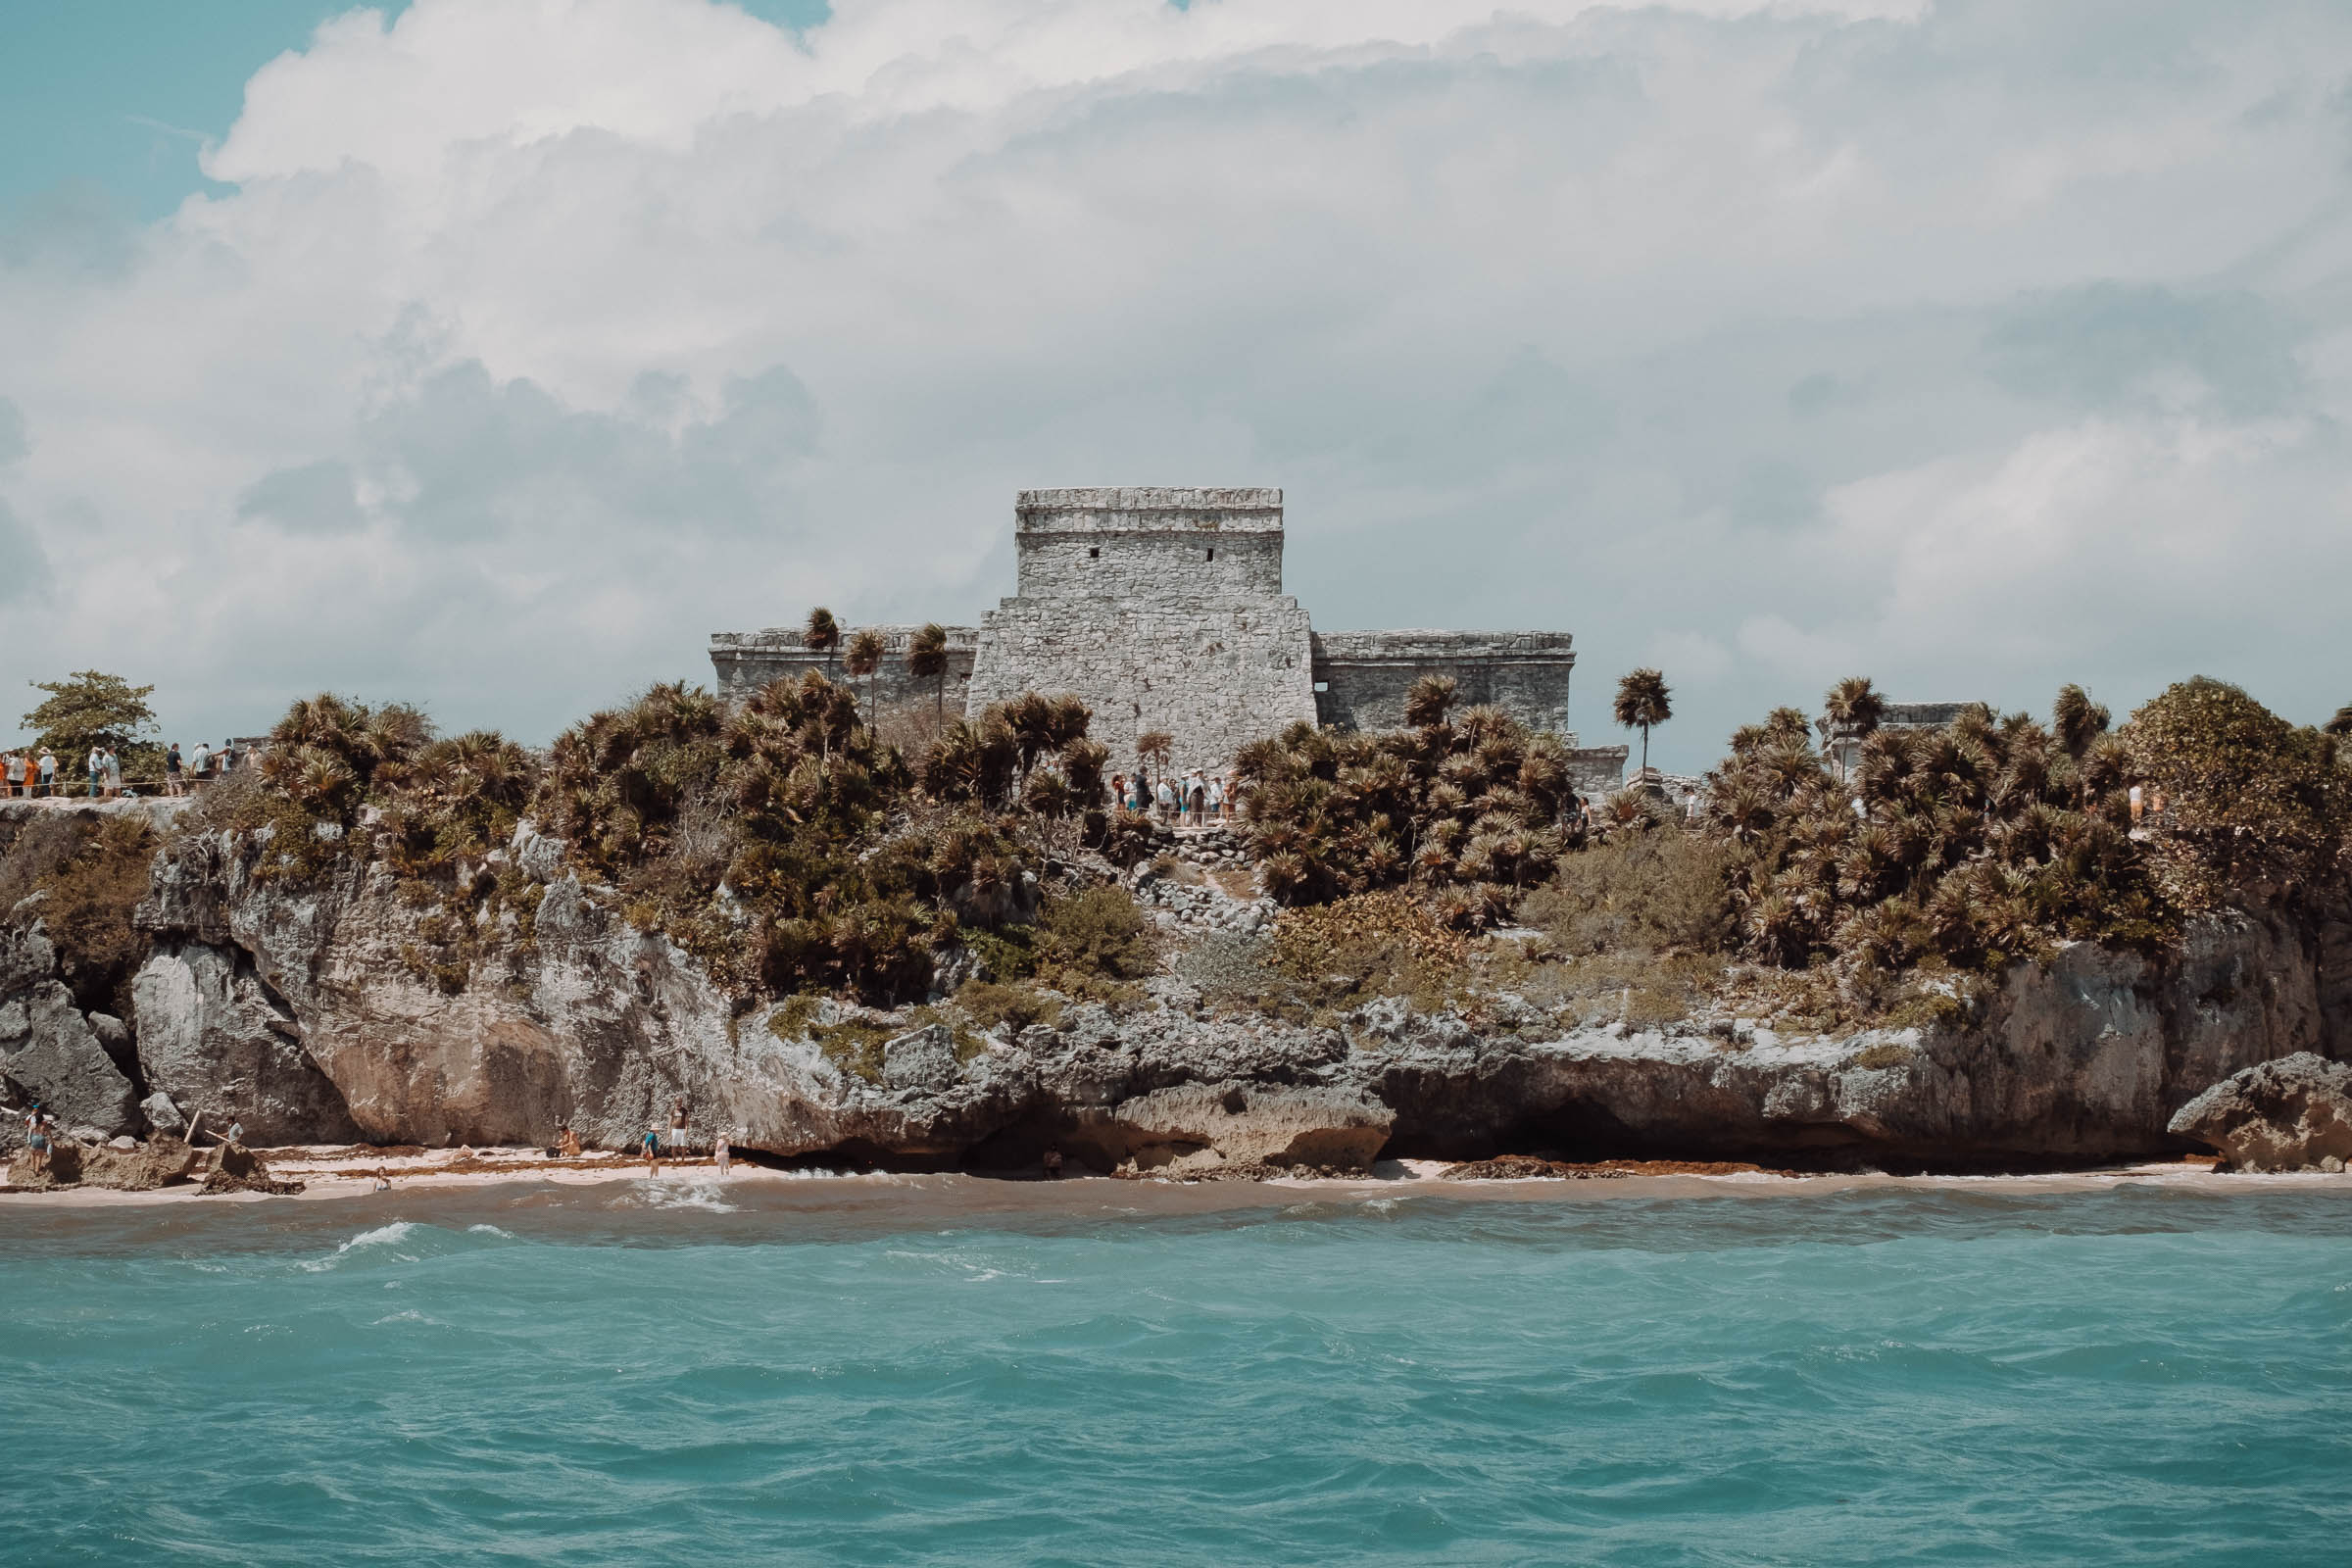 Chacon Images_Mexico2019_Web-40.jpg